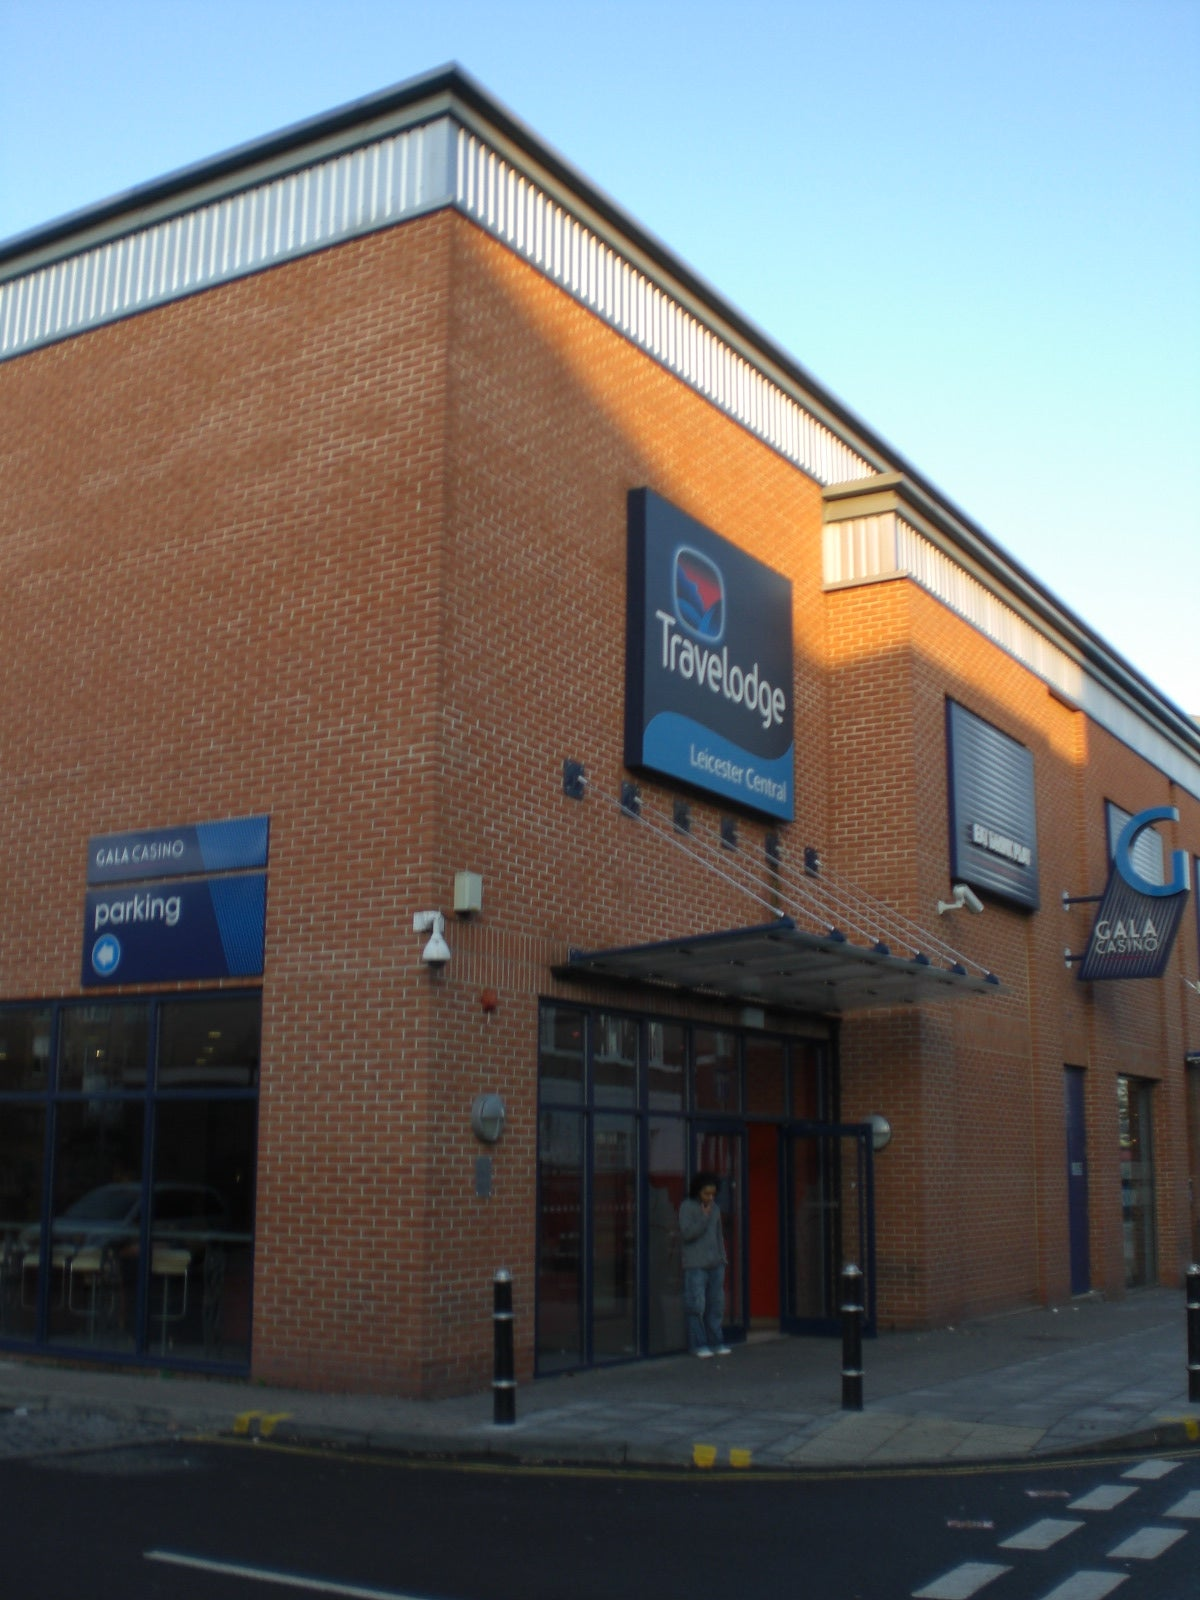 Hotel Travelodge Leicester Central